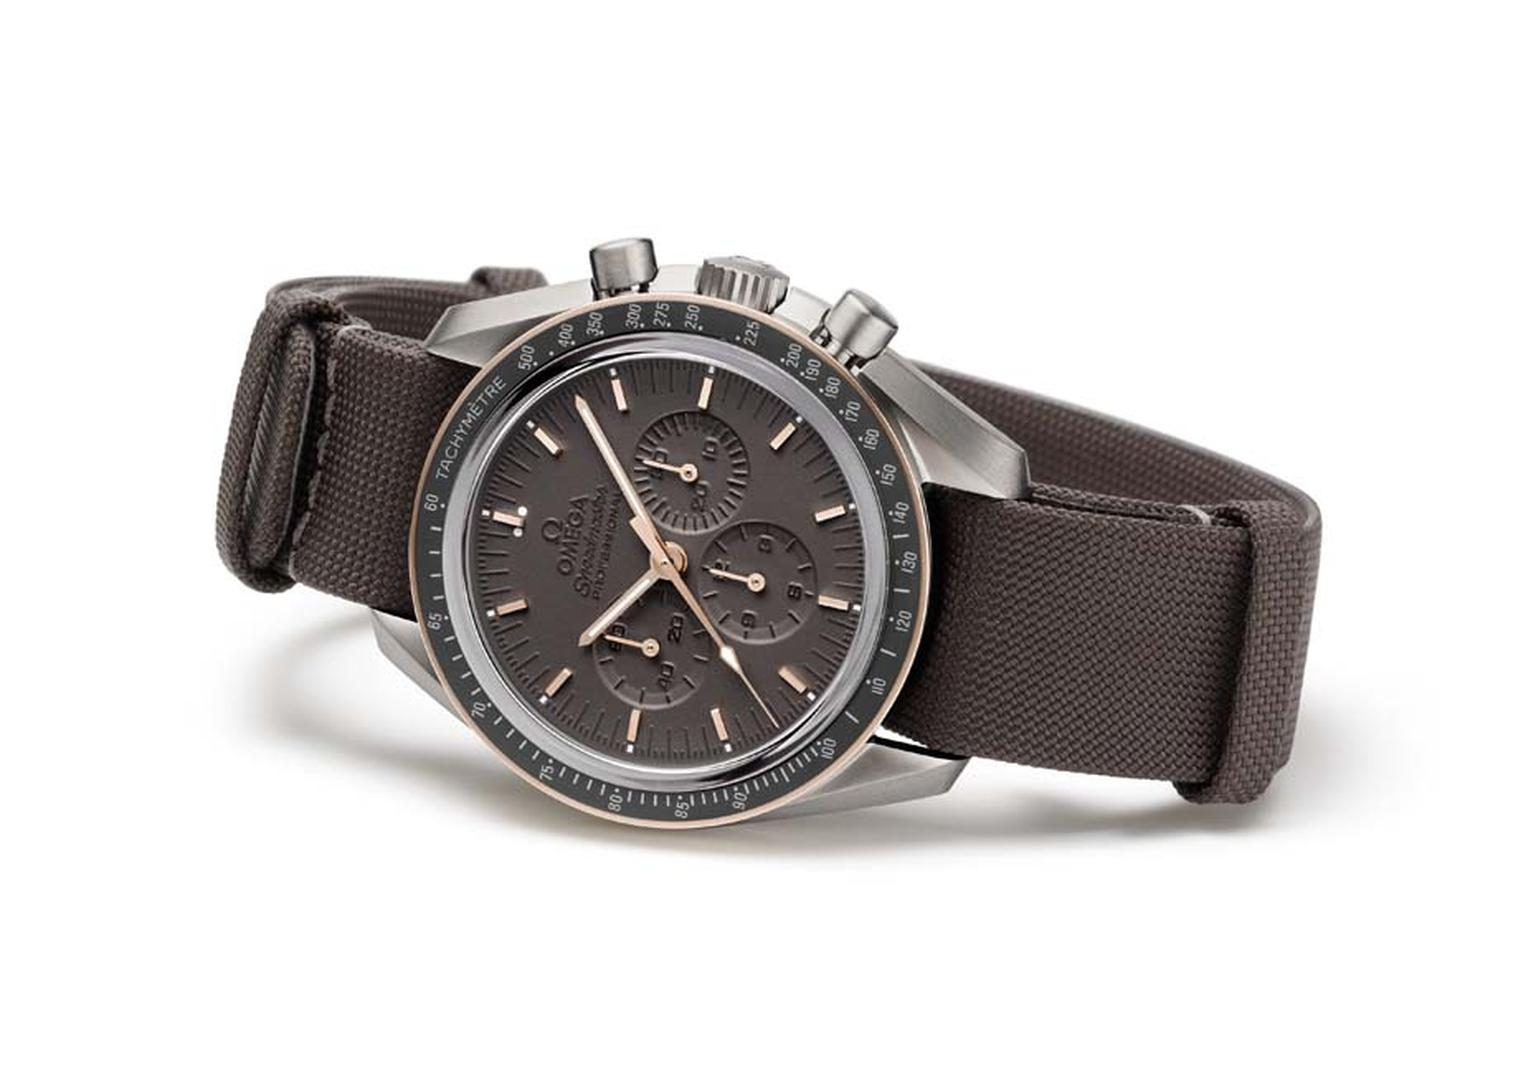 Omega's Speedmaster Professional Apollo 11 45th Anniversary, limited to 1,969 pieces, was presented on a hard-wearing NATO strap